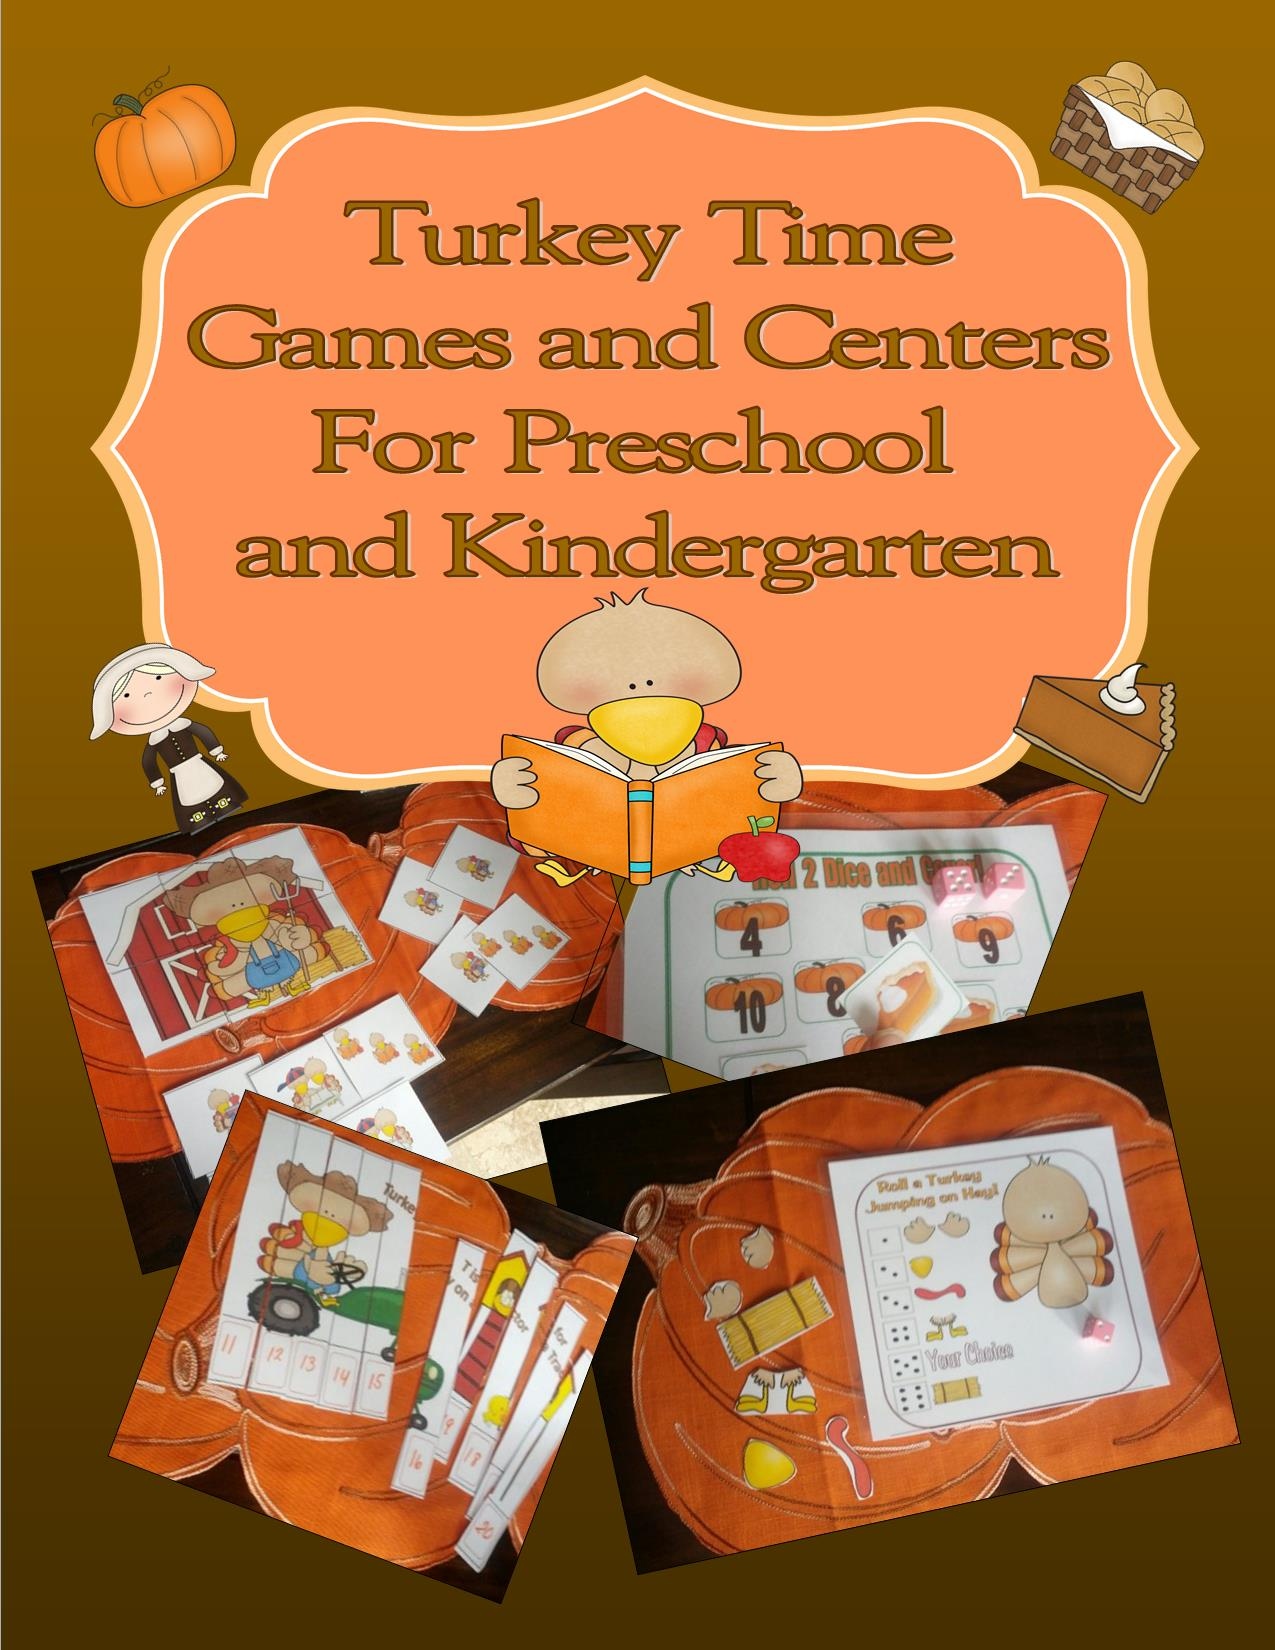 TurkeyTime Games And Centers For Preschool Kindergarten